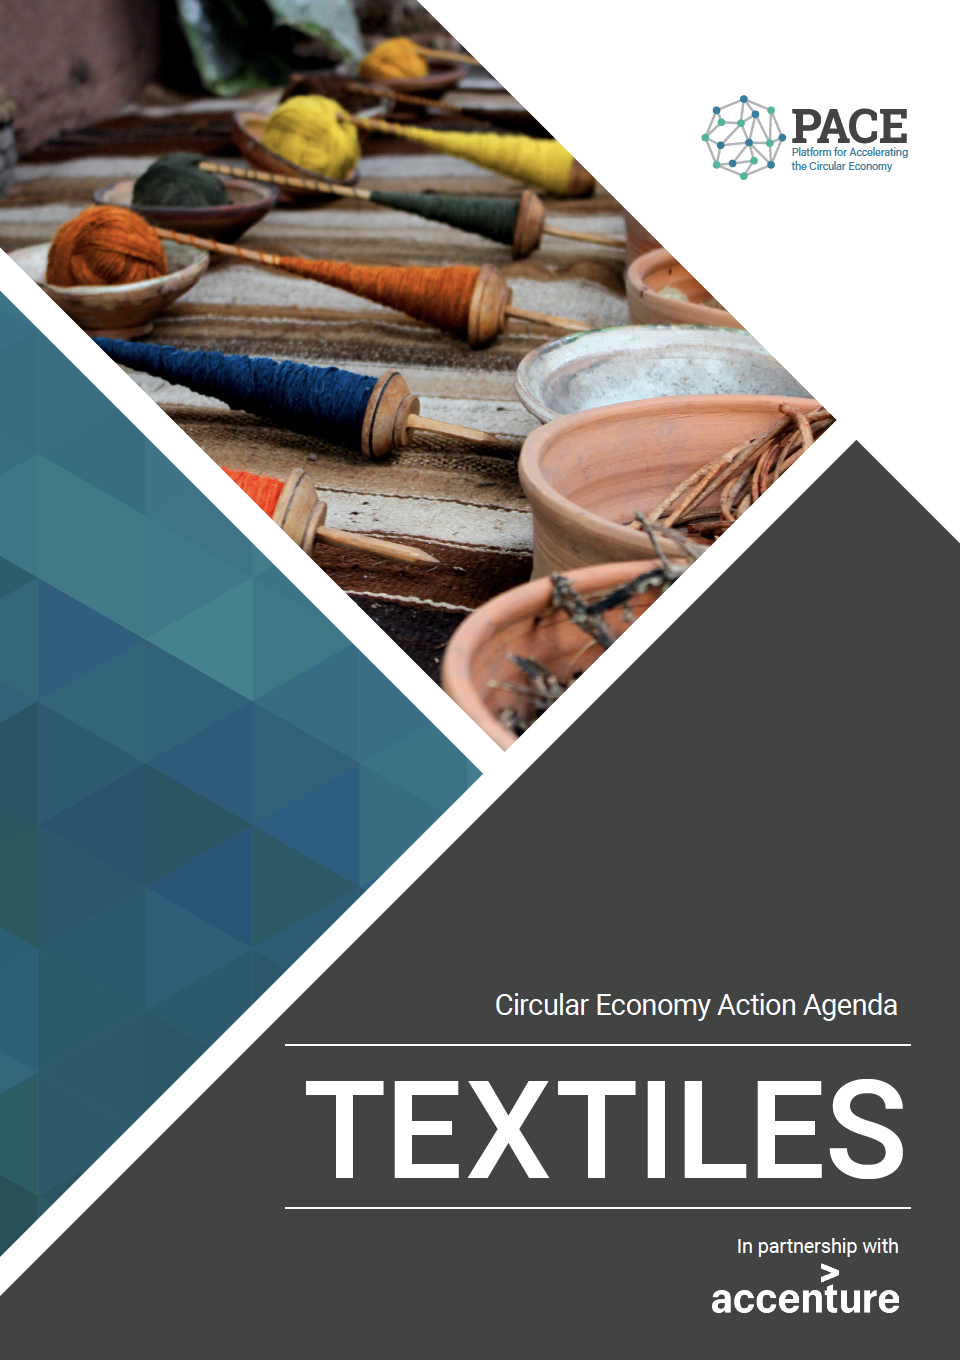 The Circular Economy Action Agenda for Textiles